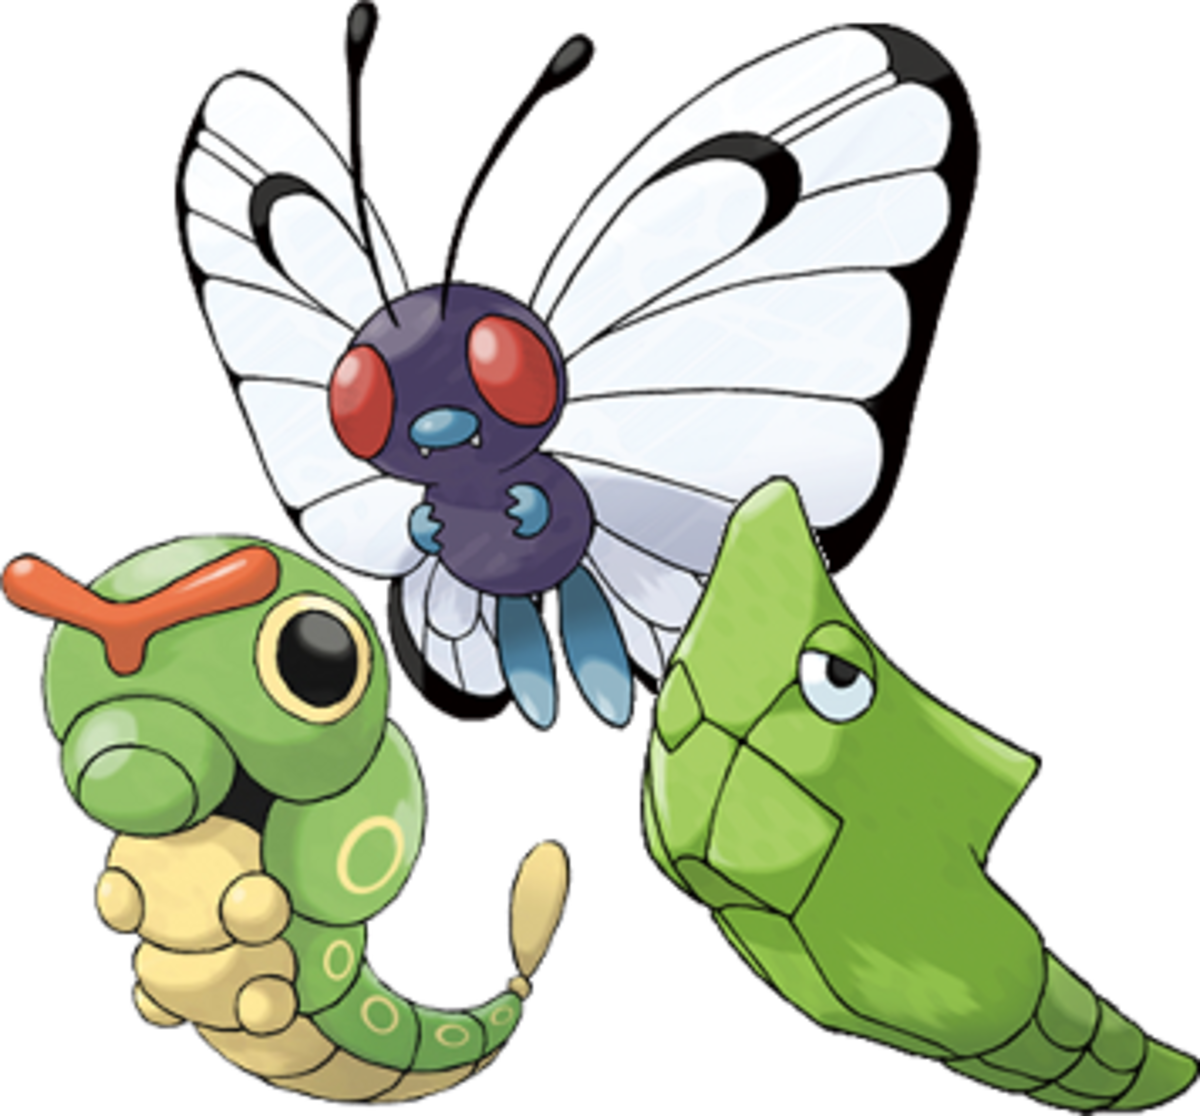 Caterpie, Metapod, and Butterfree